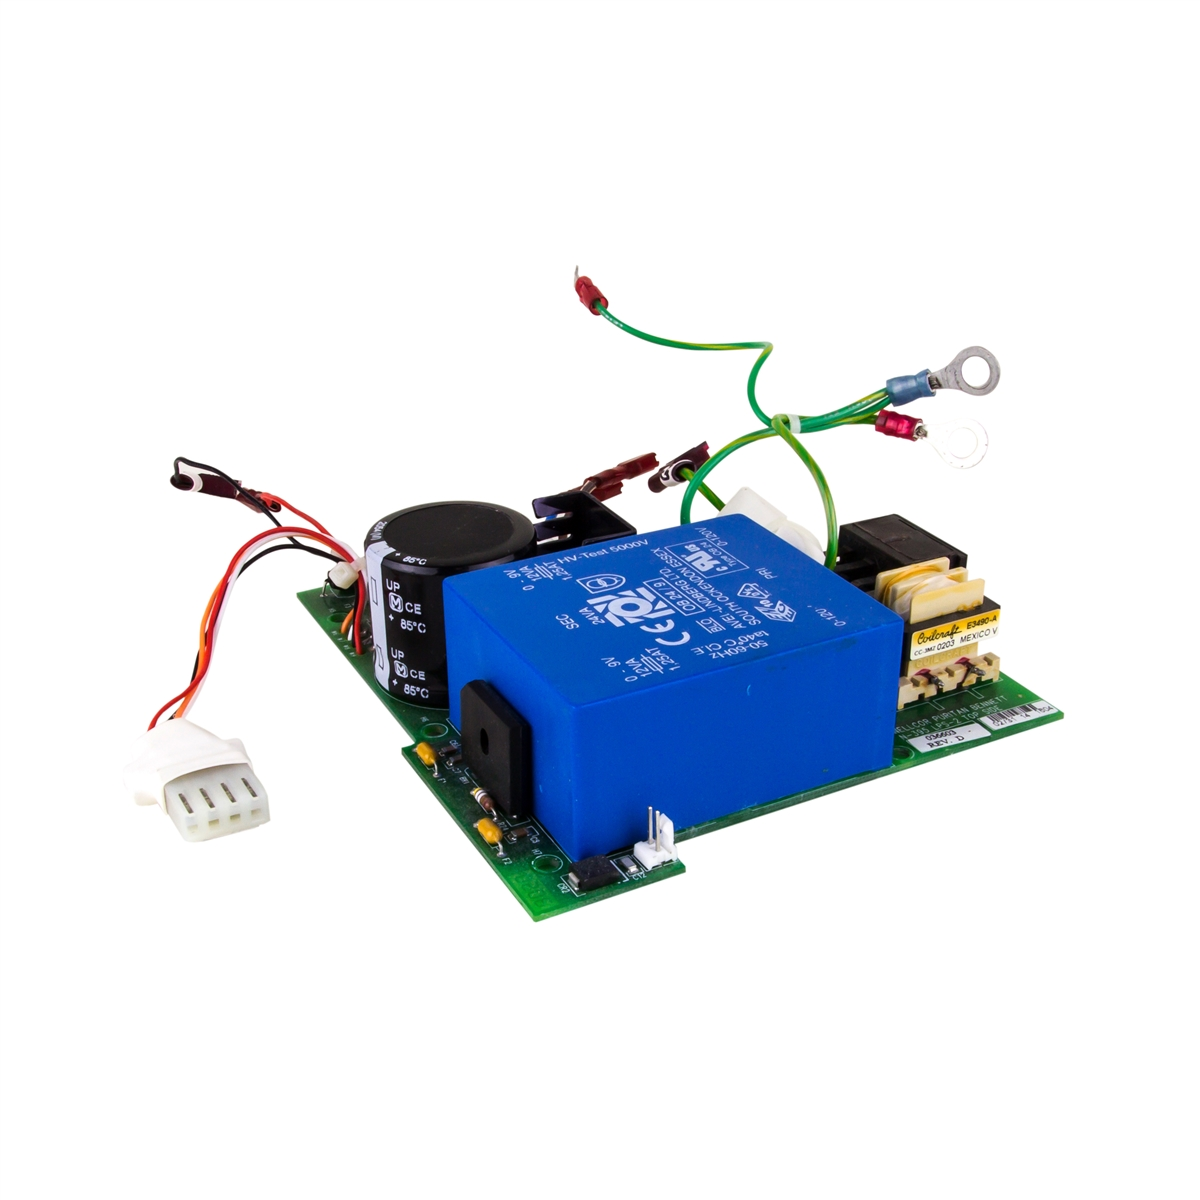 Nellcor N-595 Pulse Oximeter Monitor Power Supply Assembly